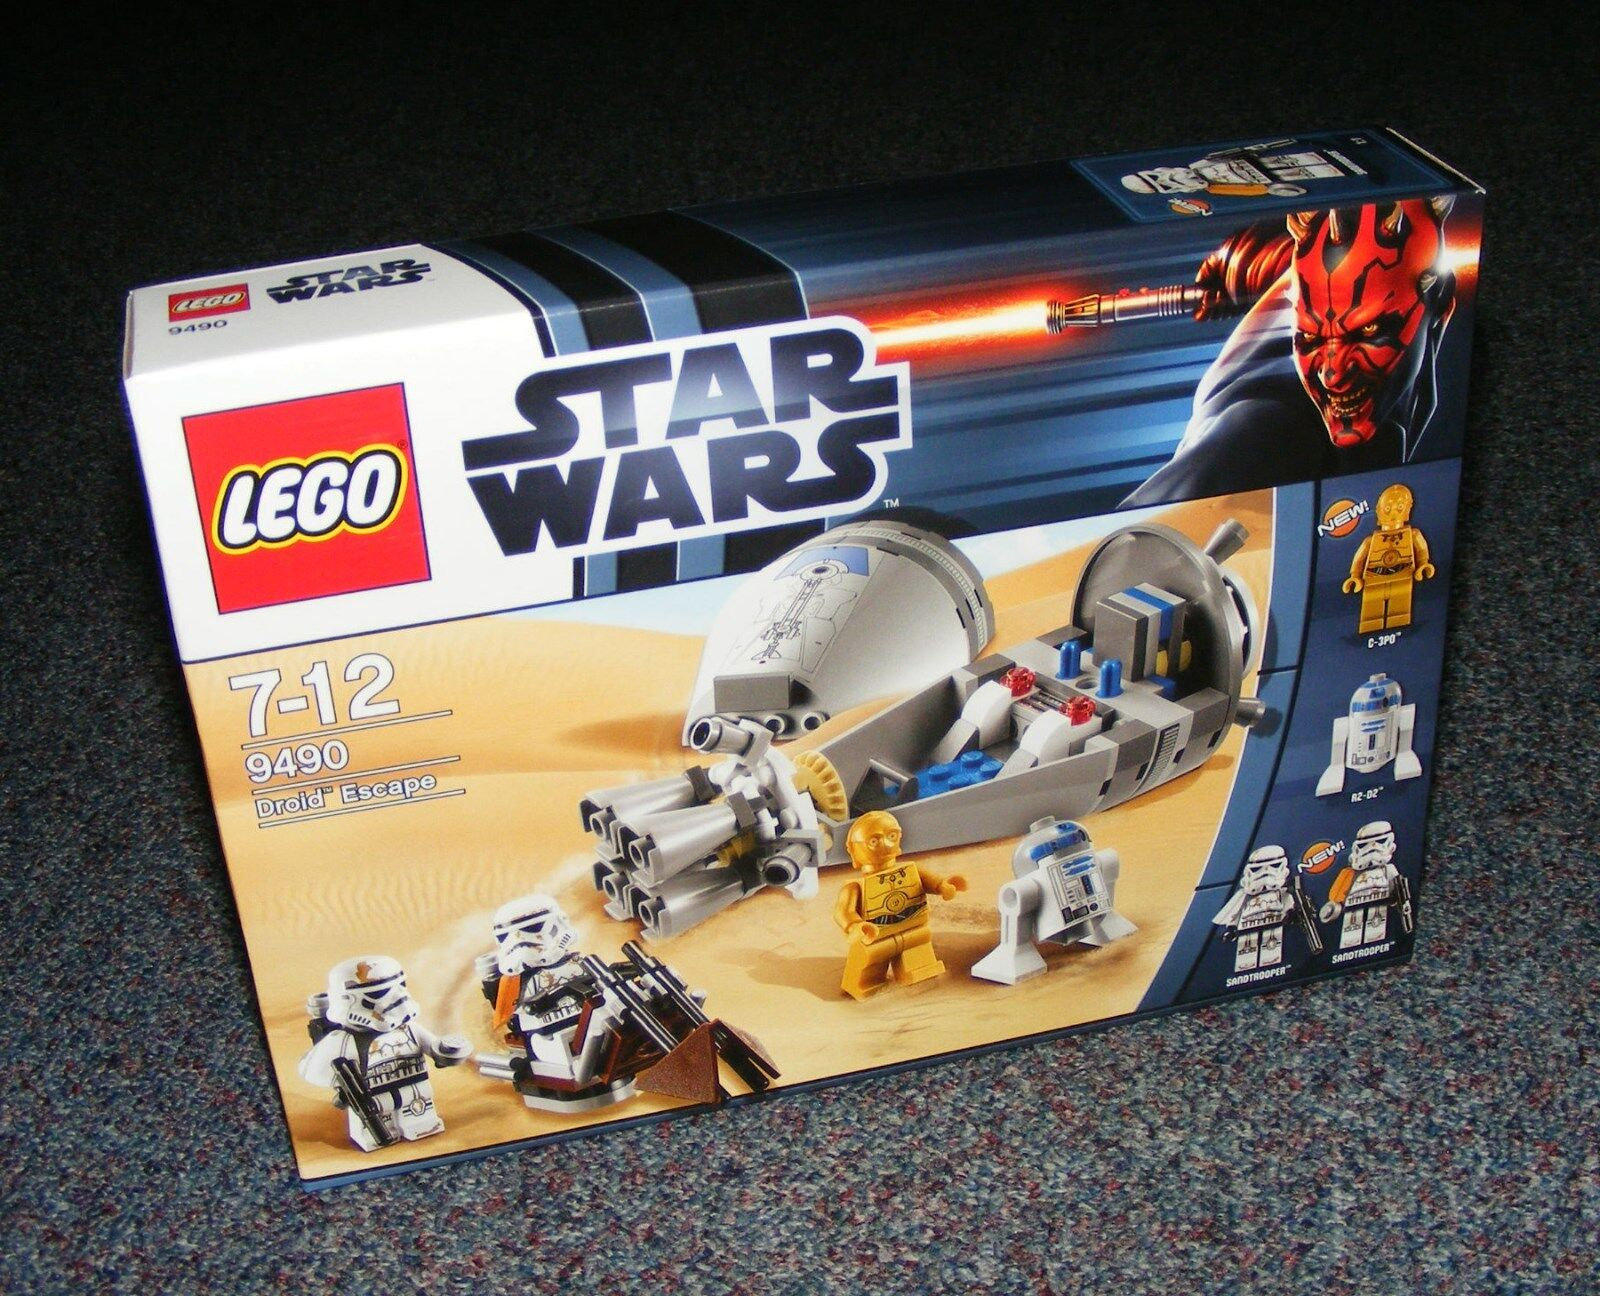 STAR WARS LEGO 9490 DROID ESCAPE BRAND NEW SEALED